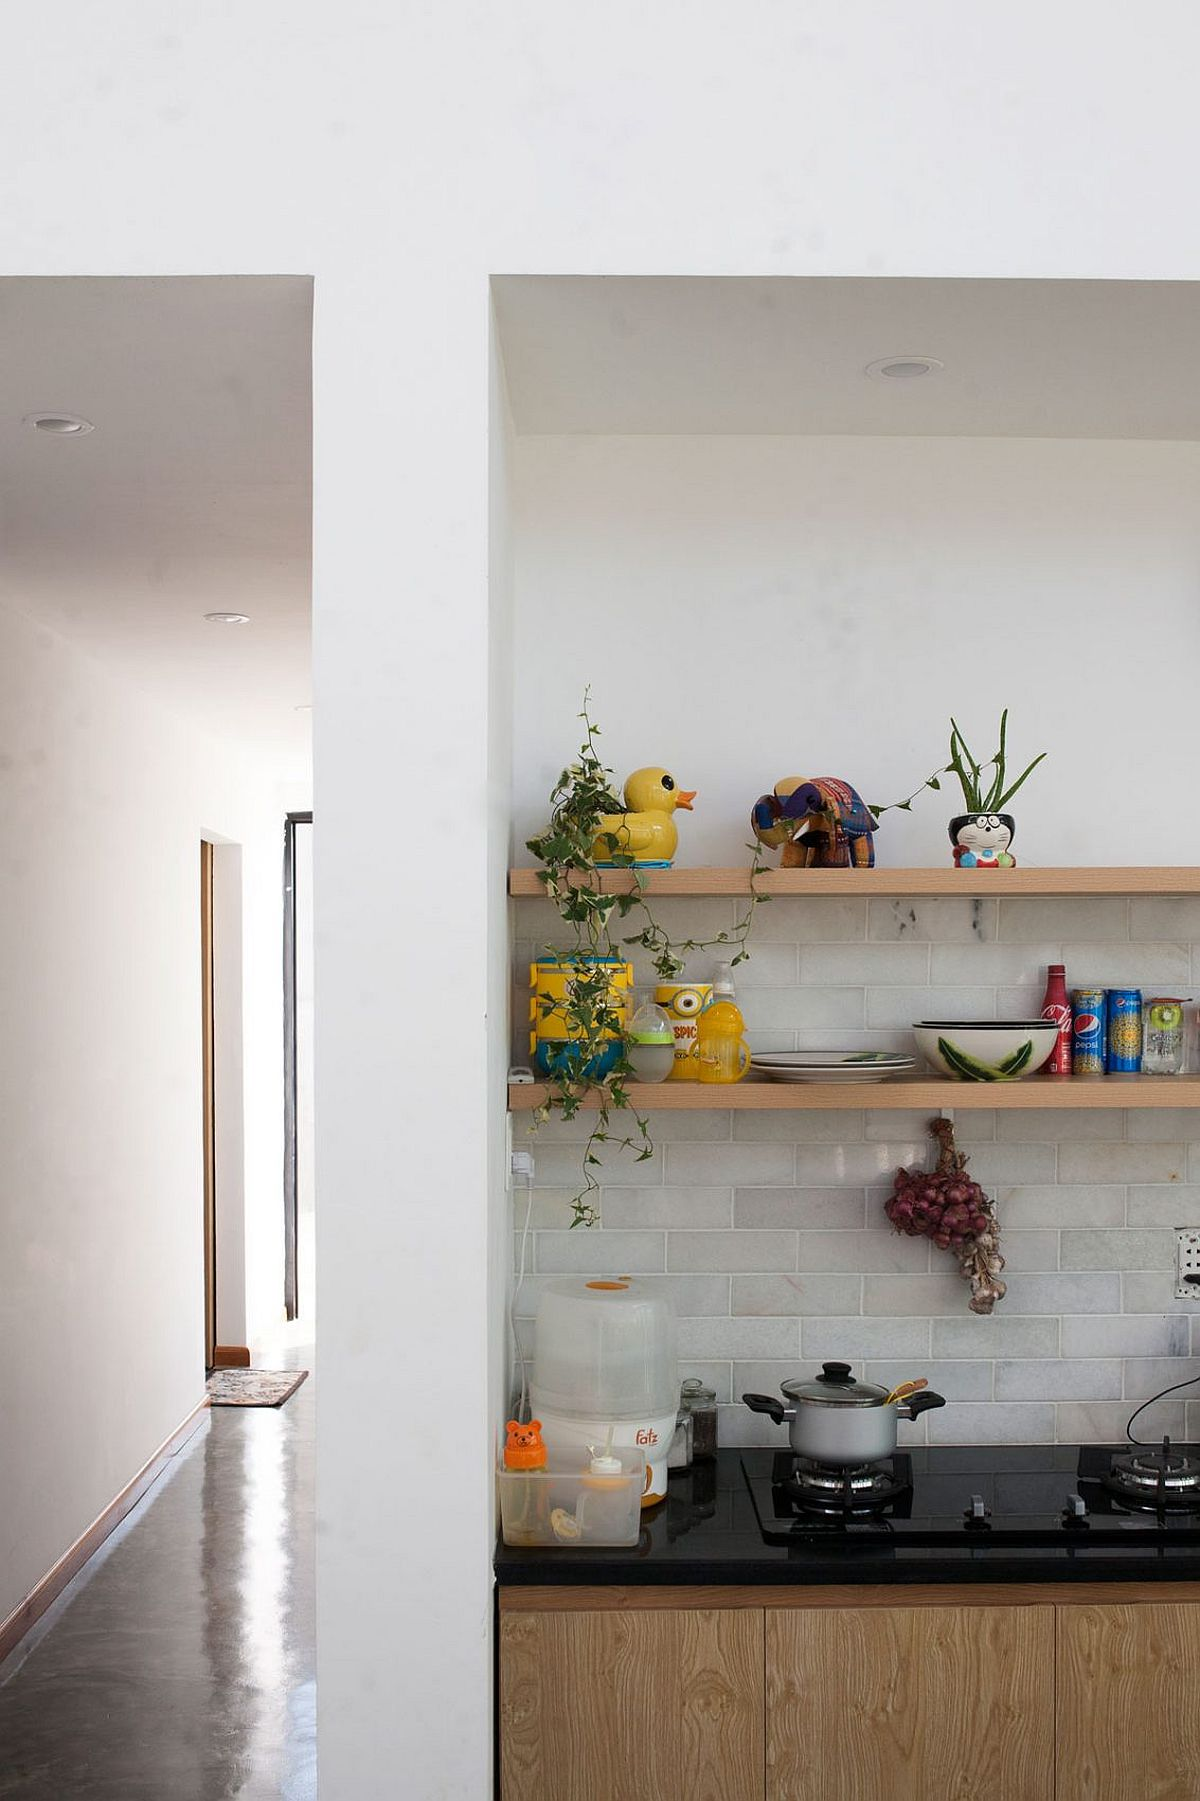 Open shelves above the kitchen counter at the stylish modern house in Vietnam